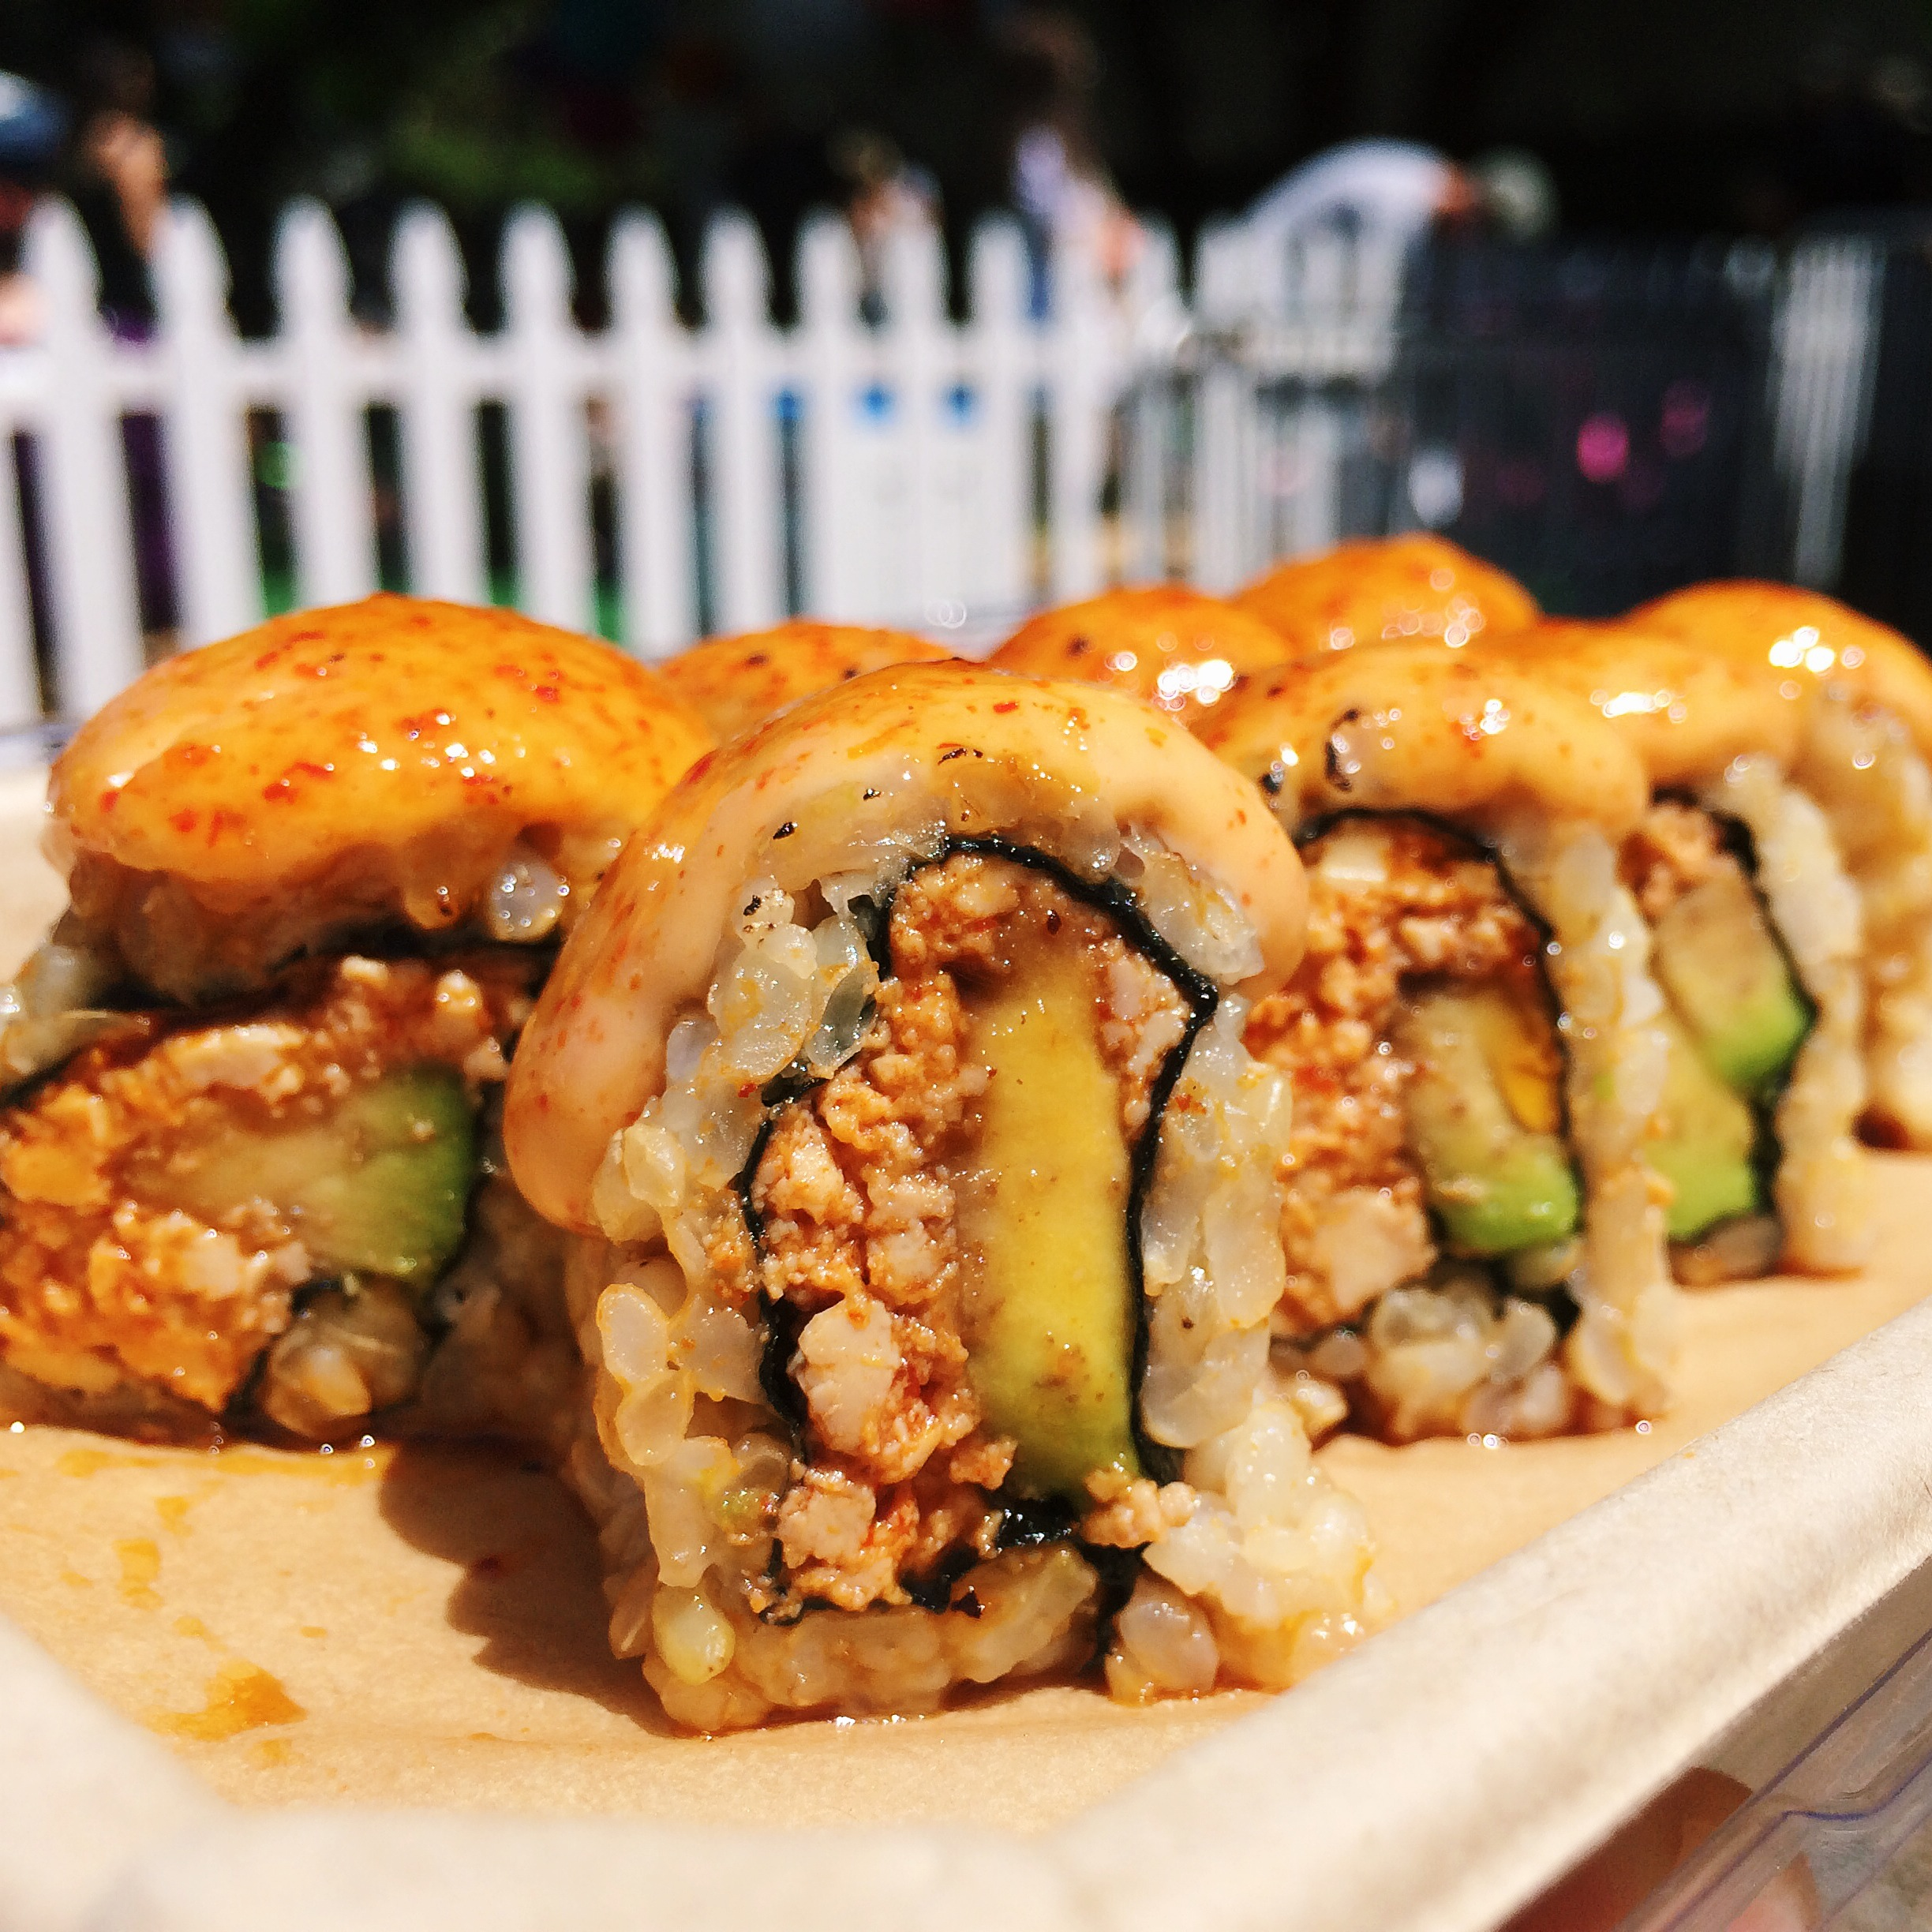 vegan dragon sushi roll from shojin